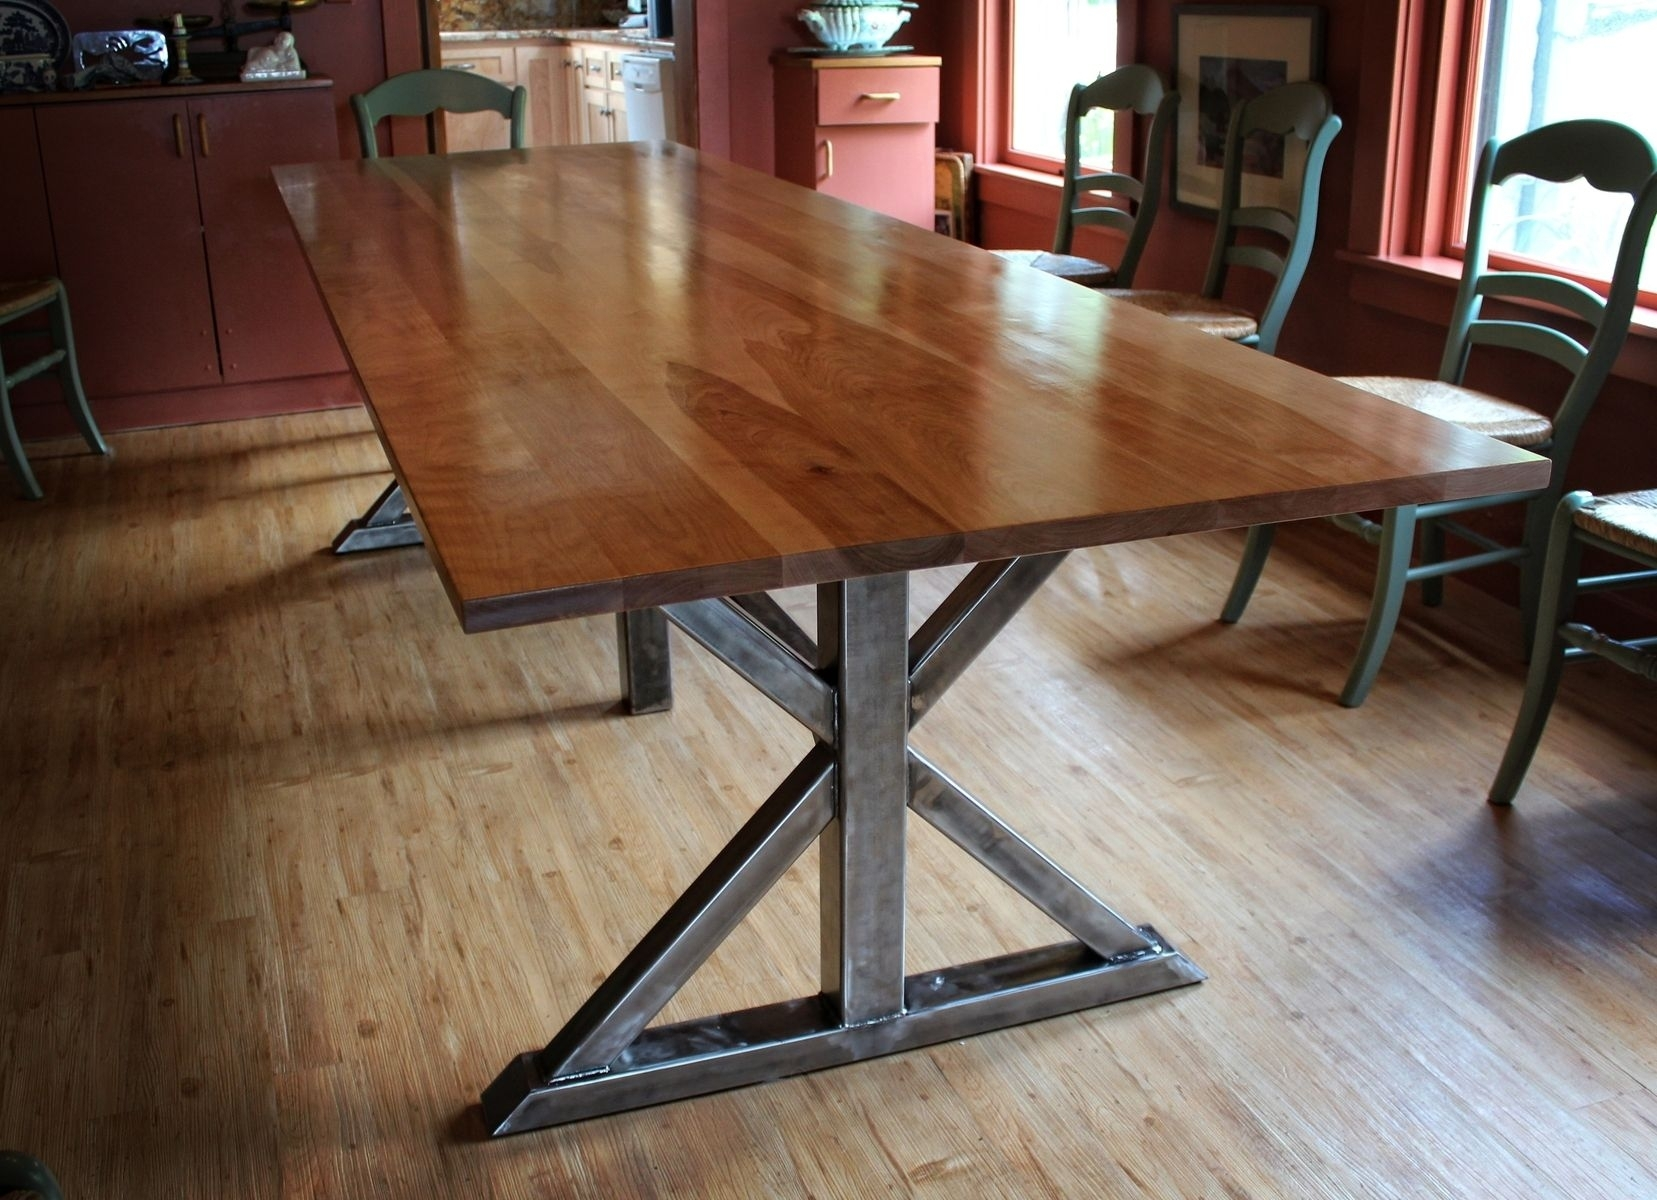 Rectangular Dining And Kitchen Tables | Custommade Pertaining To 2018 Craftsman Rectangle Extension Dining Tables (Image 18 of 20)